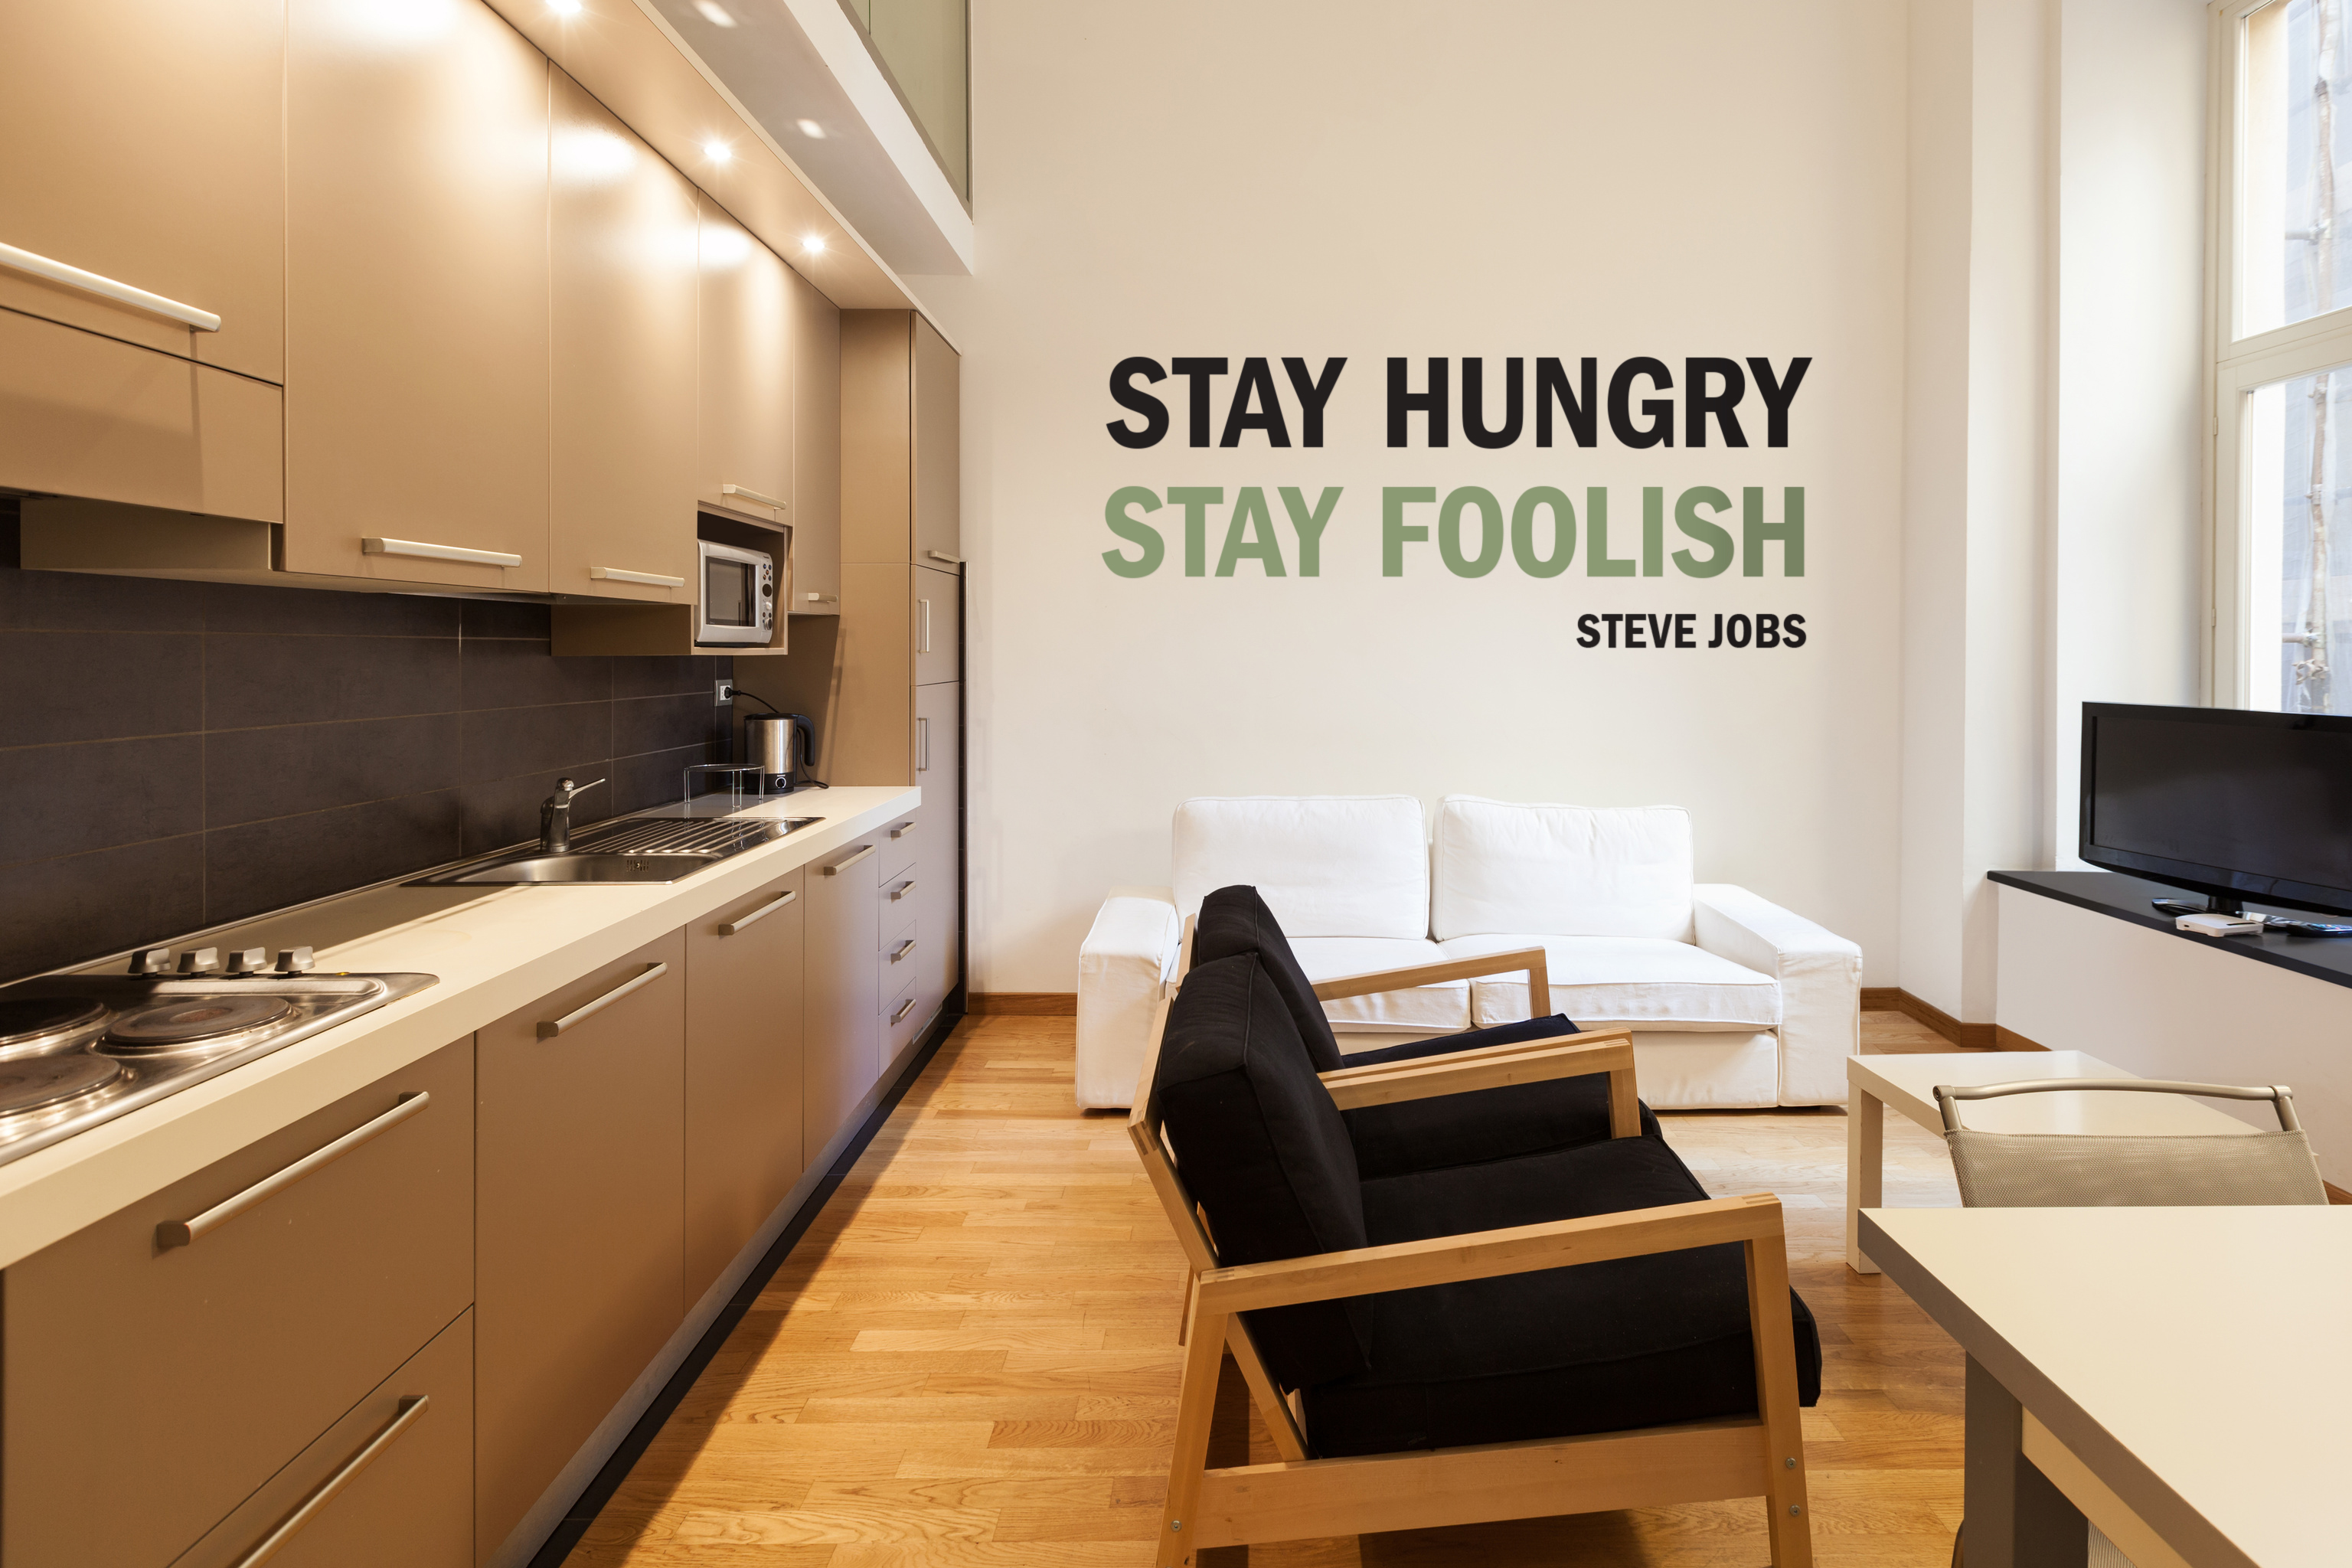 Stay hungry, stay foolish wall lettering decals